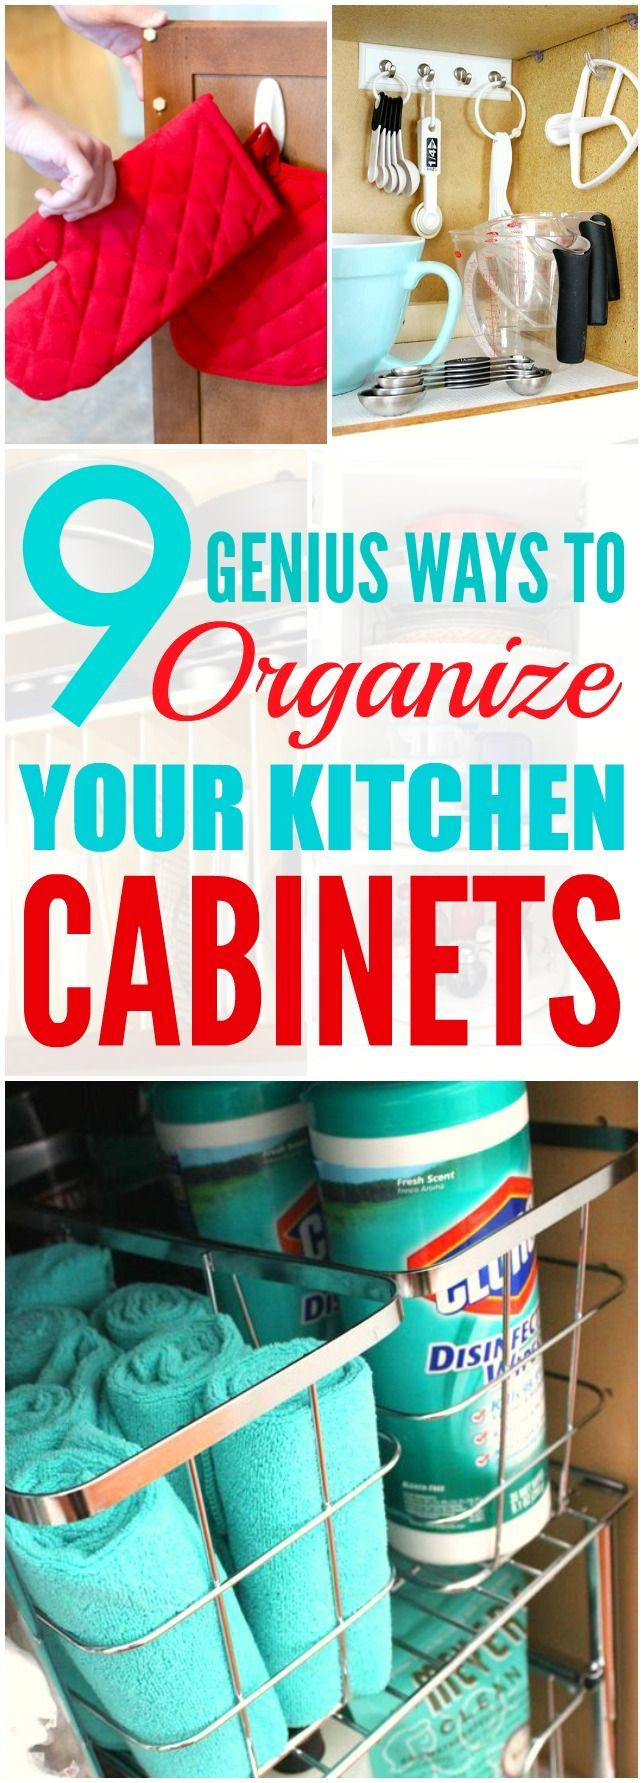 Tips for organizing your kitchen cabinets - 17 Best Ideas About Organizing Kitchen Cabinets On Pinterest Kitchen Cabinet Organization Cleaning Kitchen Cabinets And Cleaning Cabinets